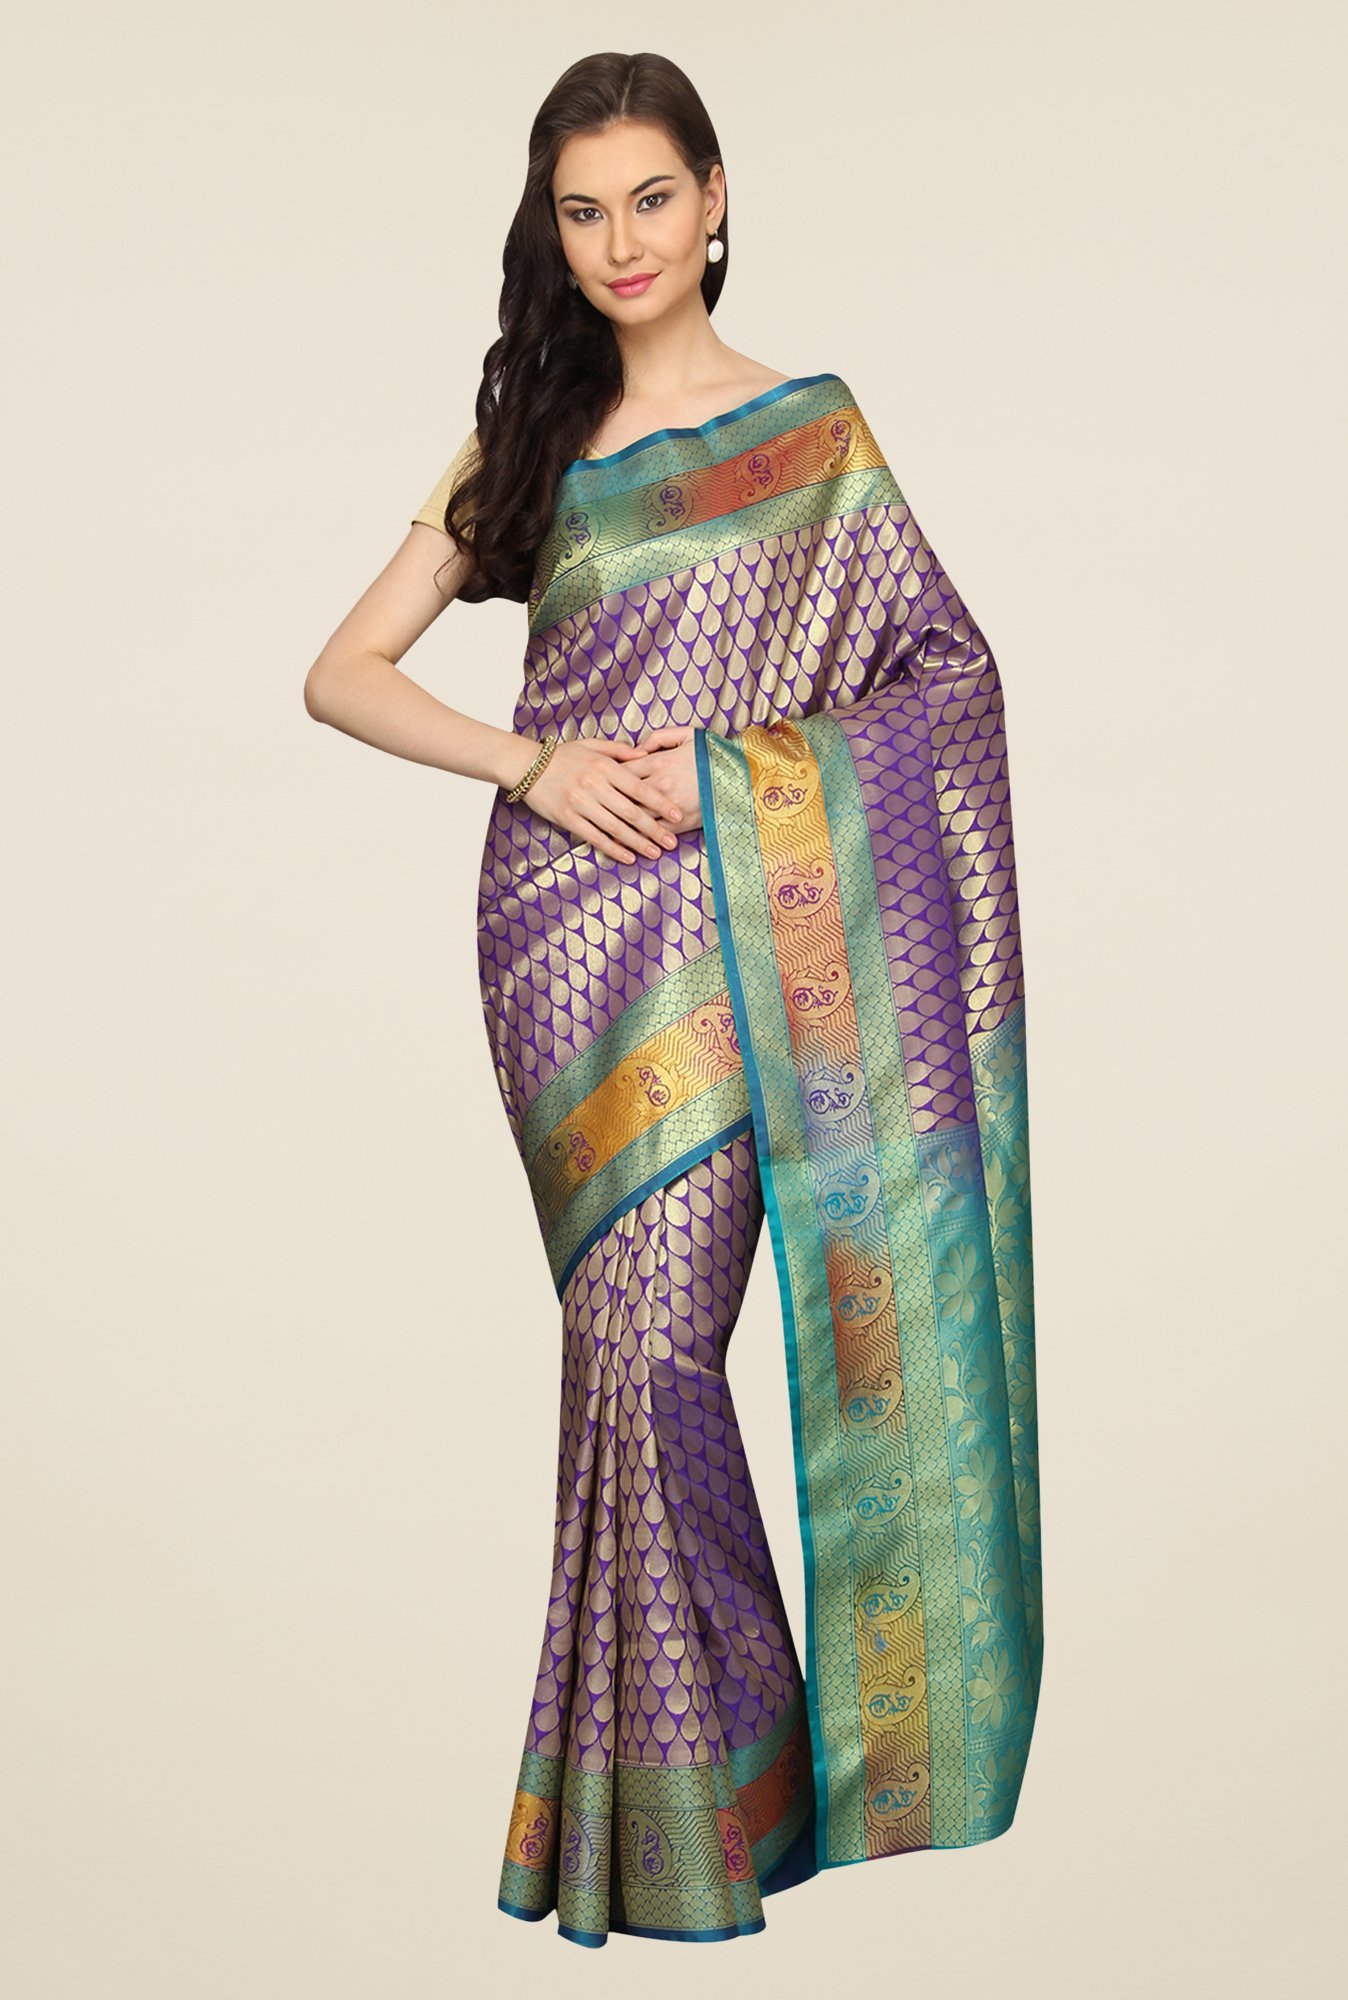 Pavecha's Purple & Teal Printed Cotton Banarasi Saree